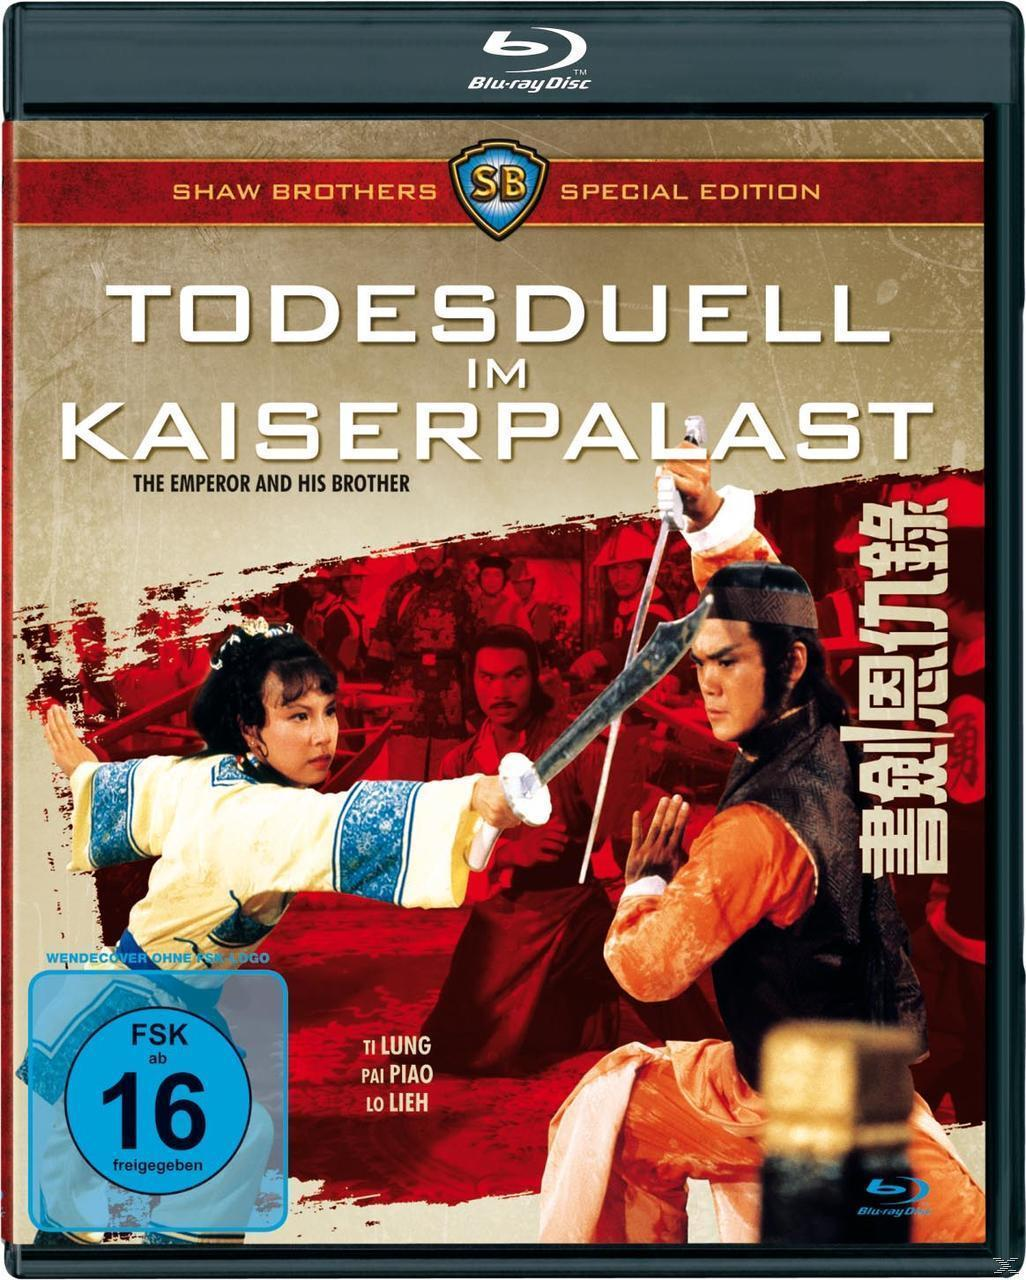 Todesduell im Kaiserpalast Special Edition (BLU-RAY) für 7,99 Euro